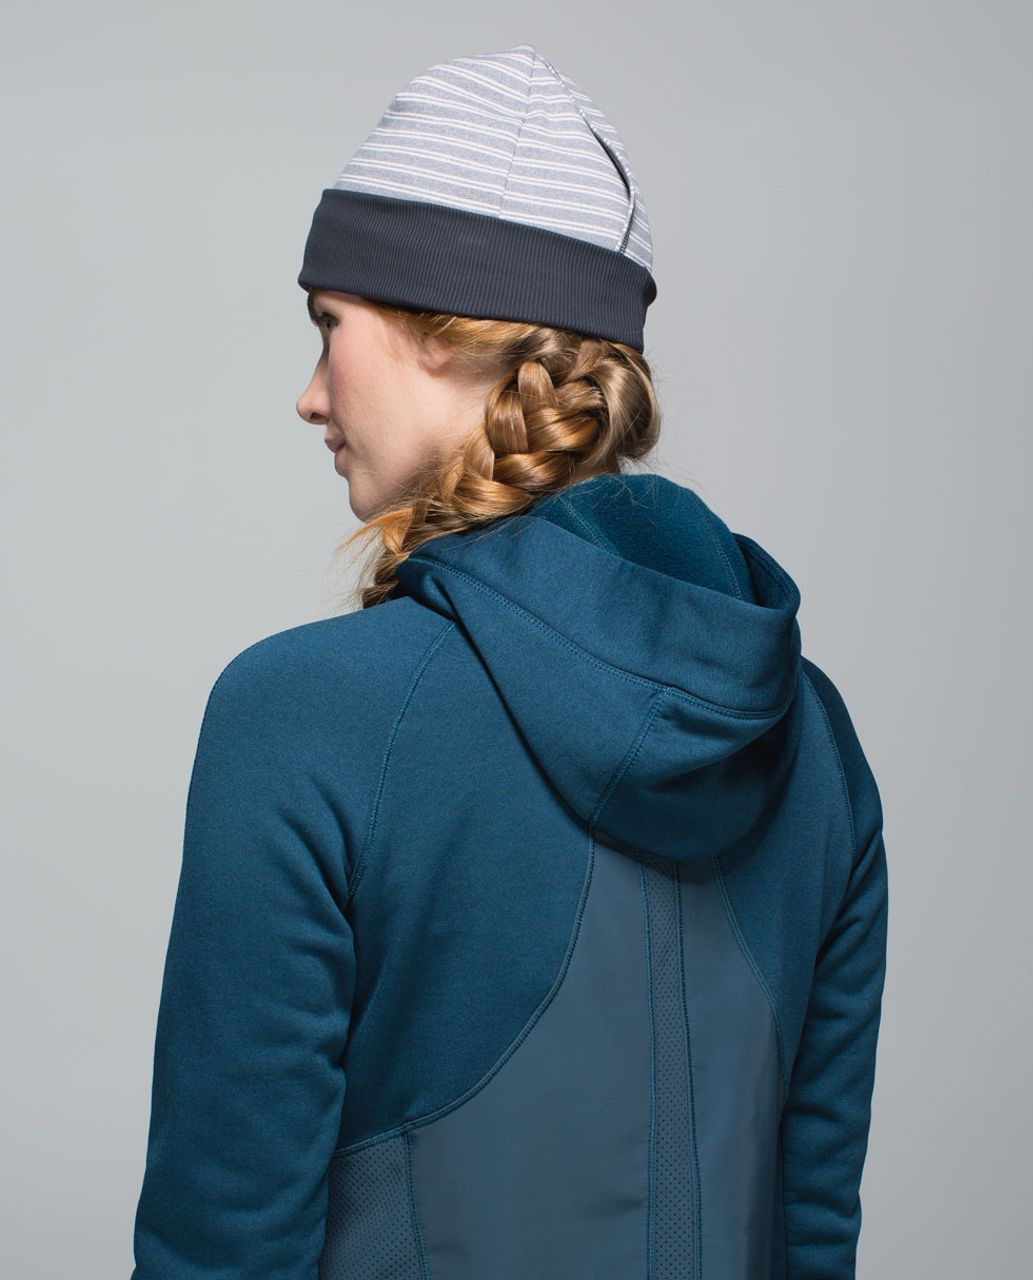 Lululemon Run With Me Toque - Double Trouble Stripe Neutral Blush Heathered Slate / Heathered Slate / Deep Coal